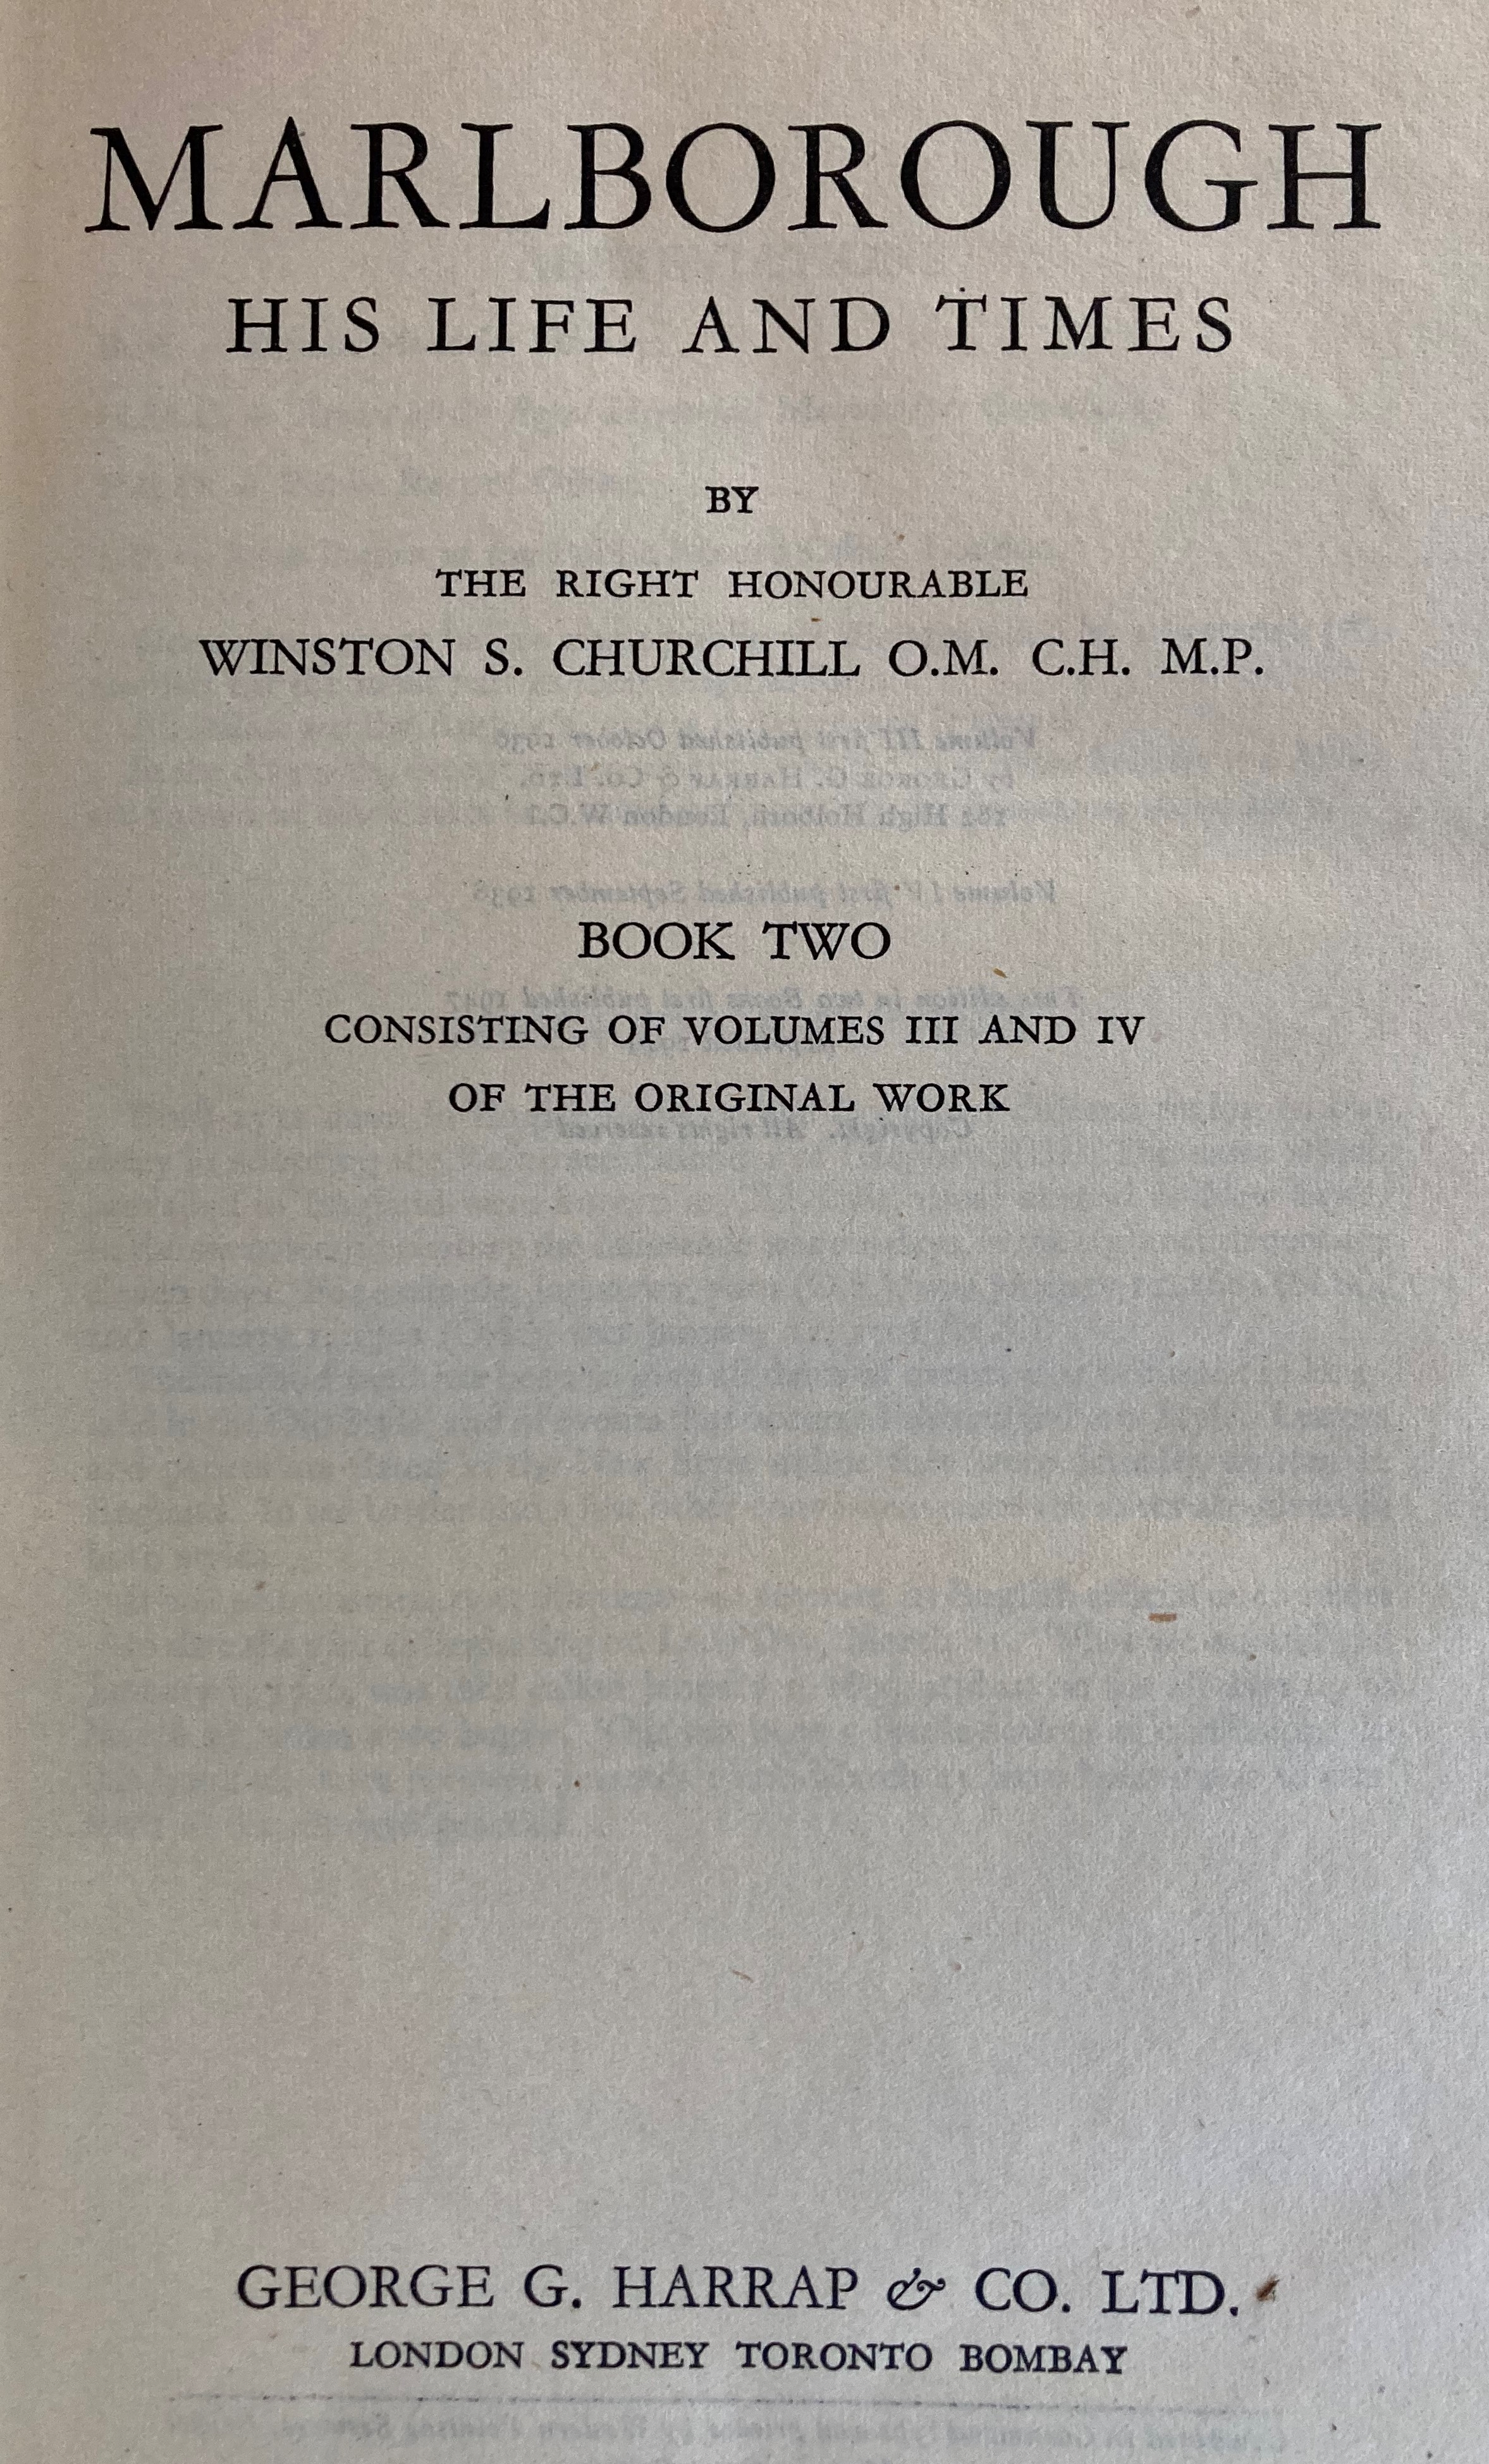 Signed by the Authorÿ Churchill (Winston S.)ÿTheir Finest Hour, Second World War, Vol. II only, - Image 3 of 22